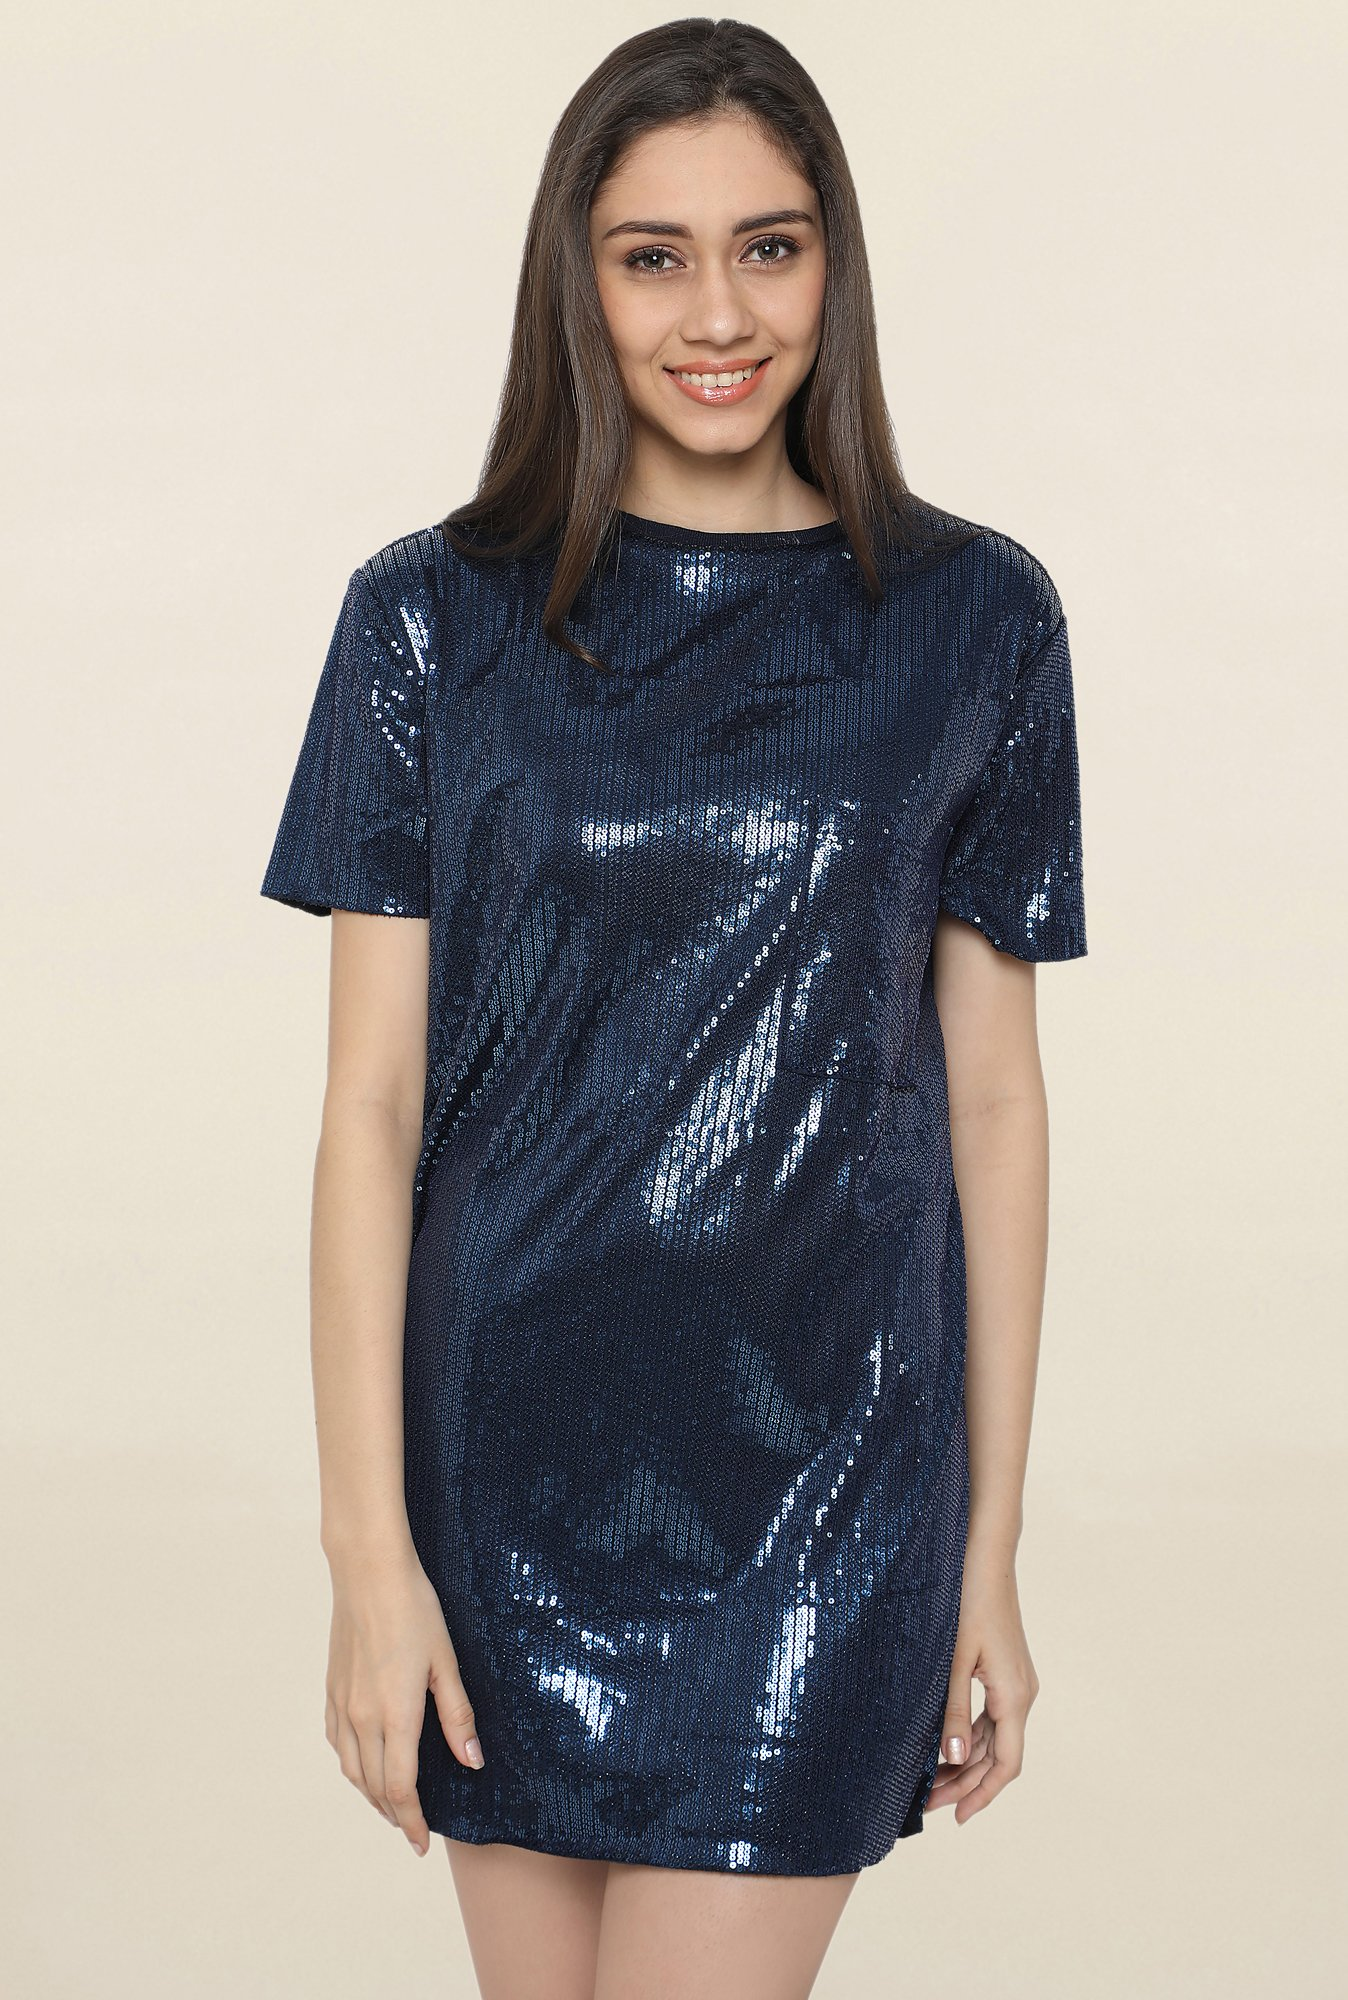 Globus Navy Embellished Dress